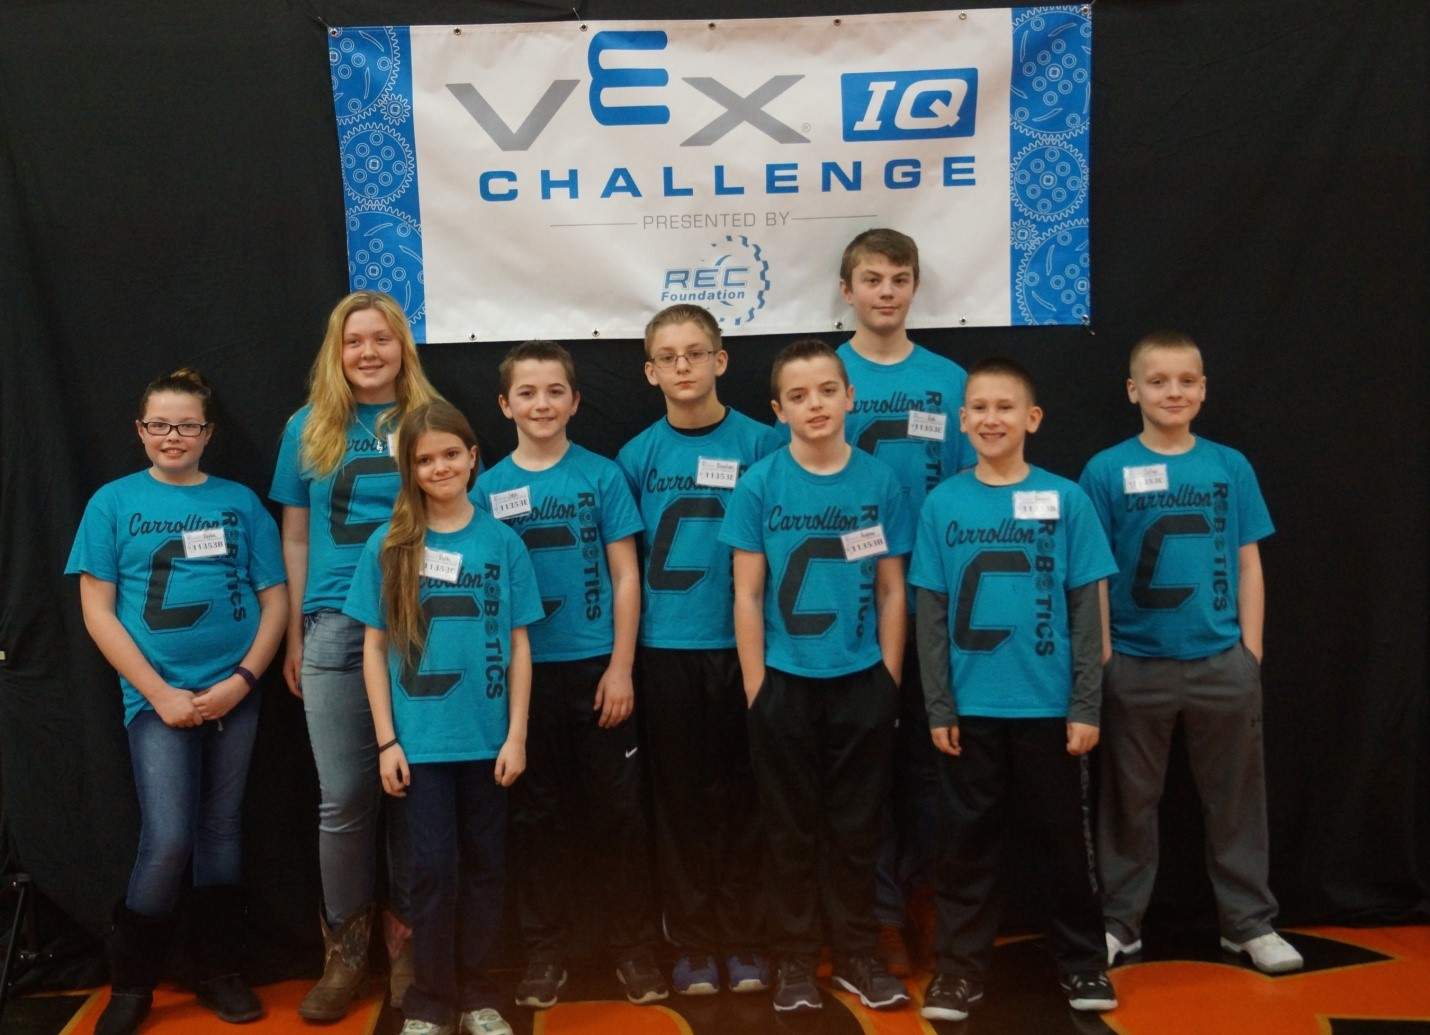 Pictured left to right:  Back row: Kaylee Joseph, Chandra Brammer, John Paul Birong, Braxton Swearingen, Kodi Wells, Collyn Grove; Front row: Ruth Davis, Andrew Birong, Grayson Rodgers